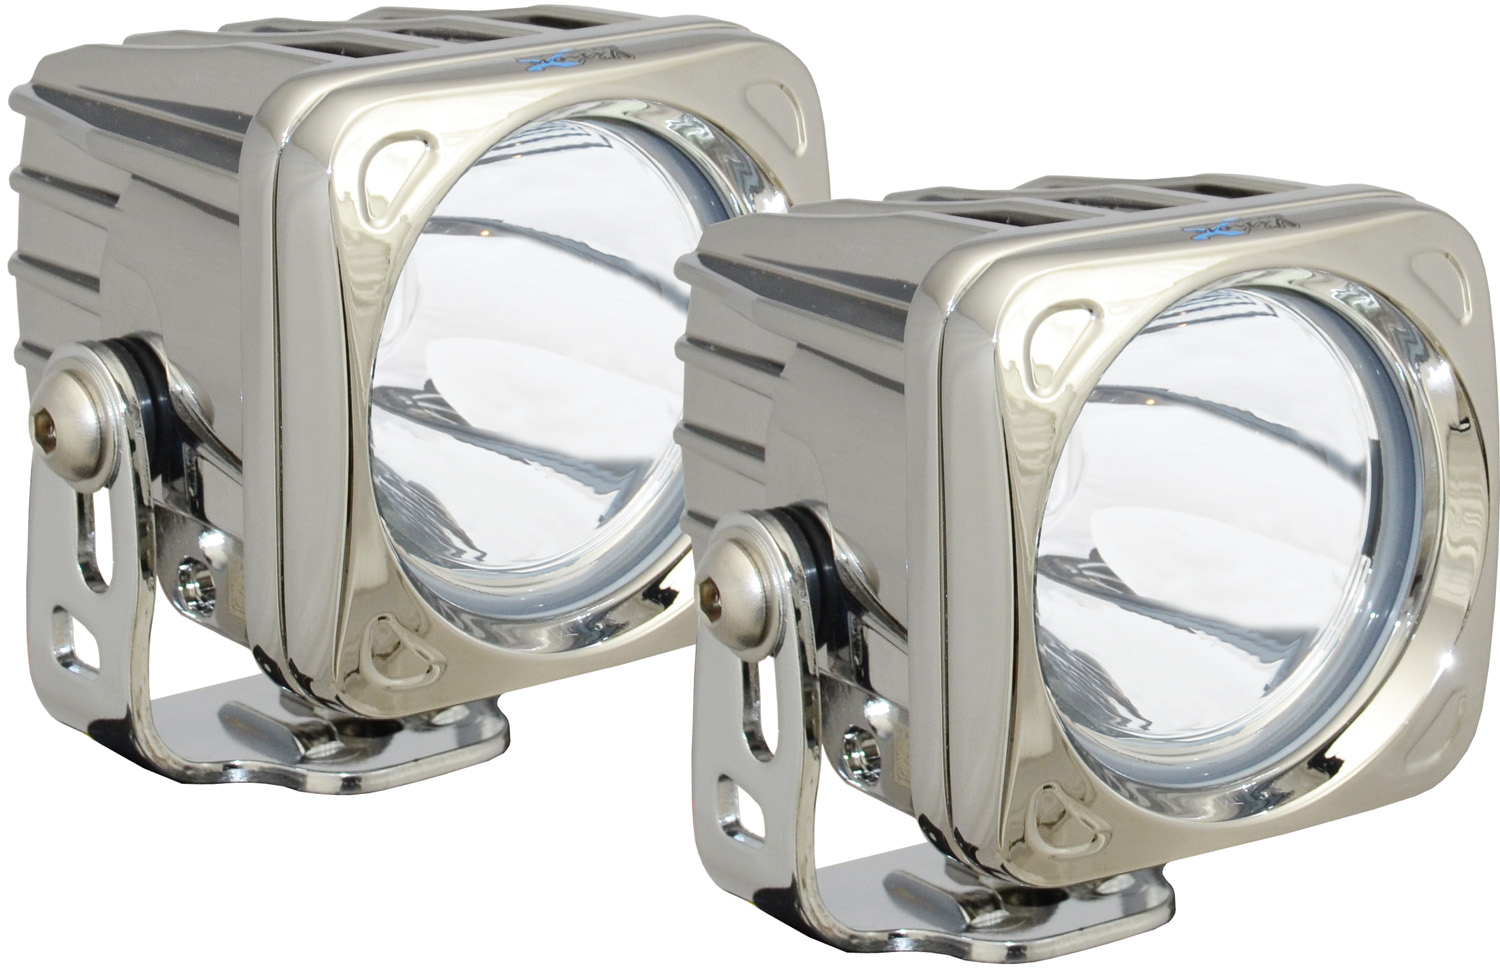 OPTIMUS SQUARE CHROME 1 10W LED 10° NARROW KIT OF 2 LIGHTS